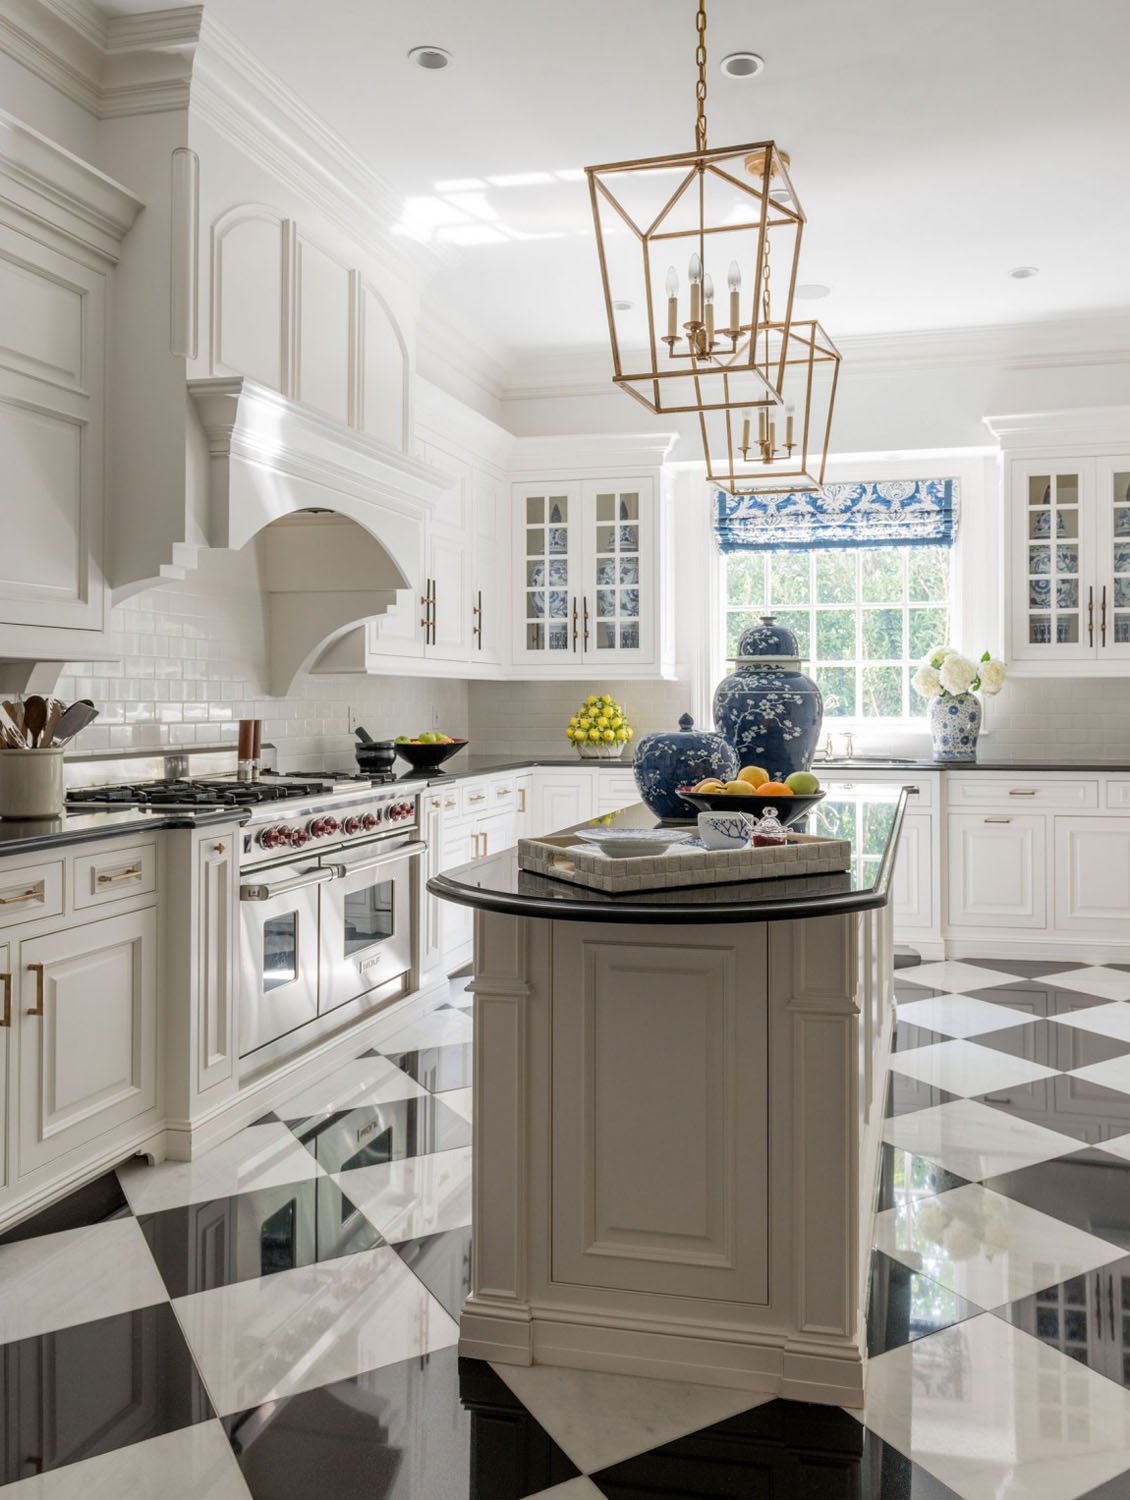 Classic Contemporary Kitchen with Checkered Flooring